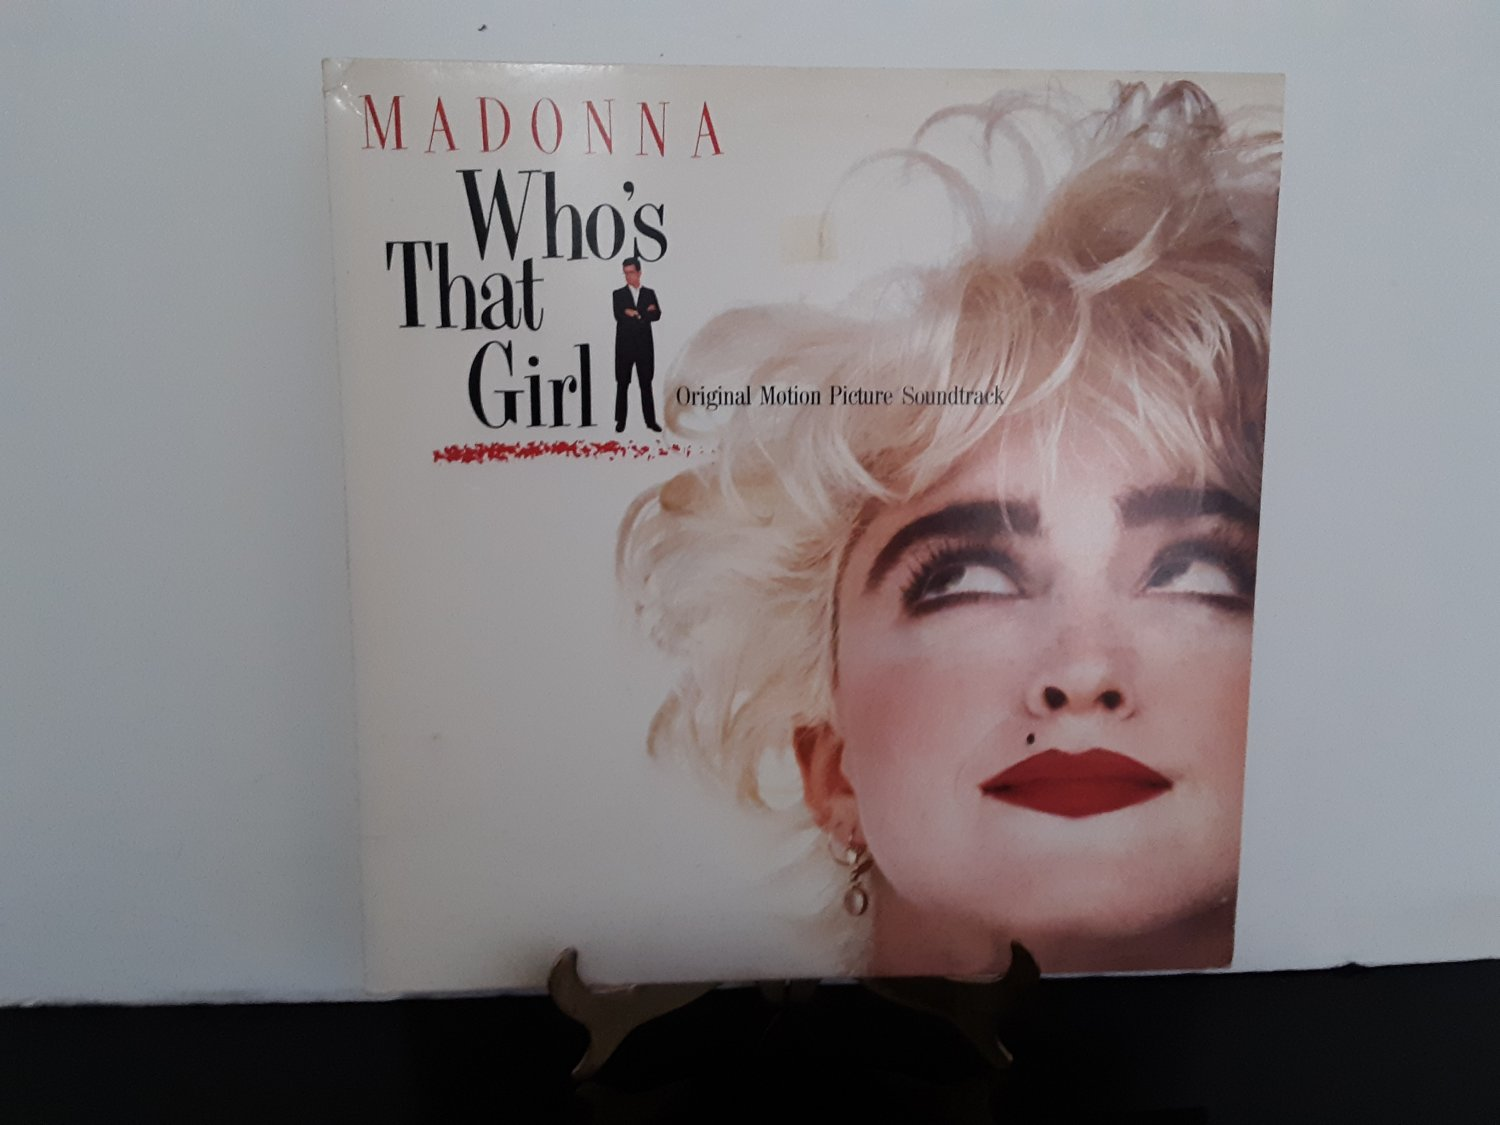 Who's That Girl - Madonna - Original Motion Picture Soundtrack - Circa 1987